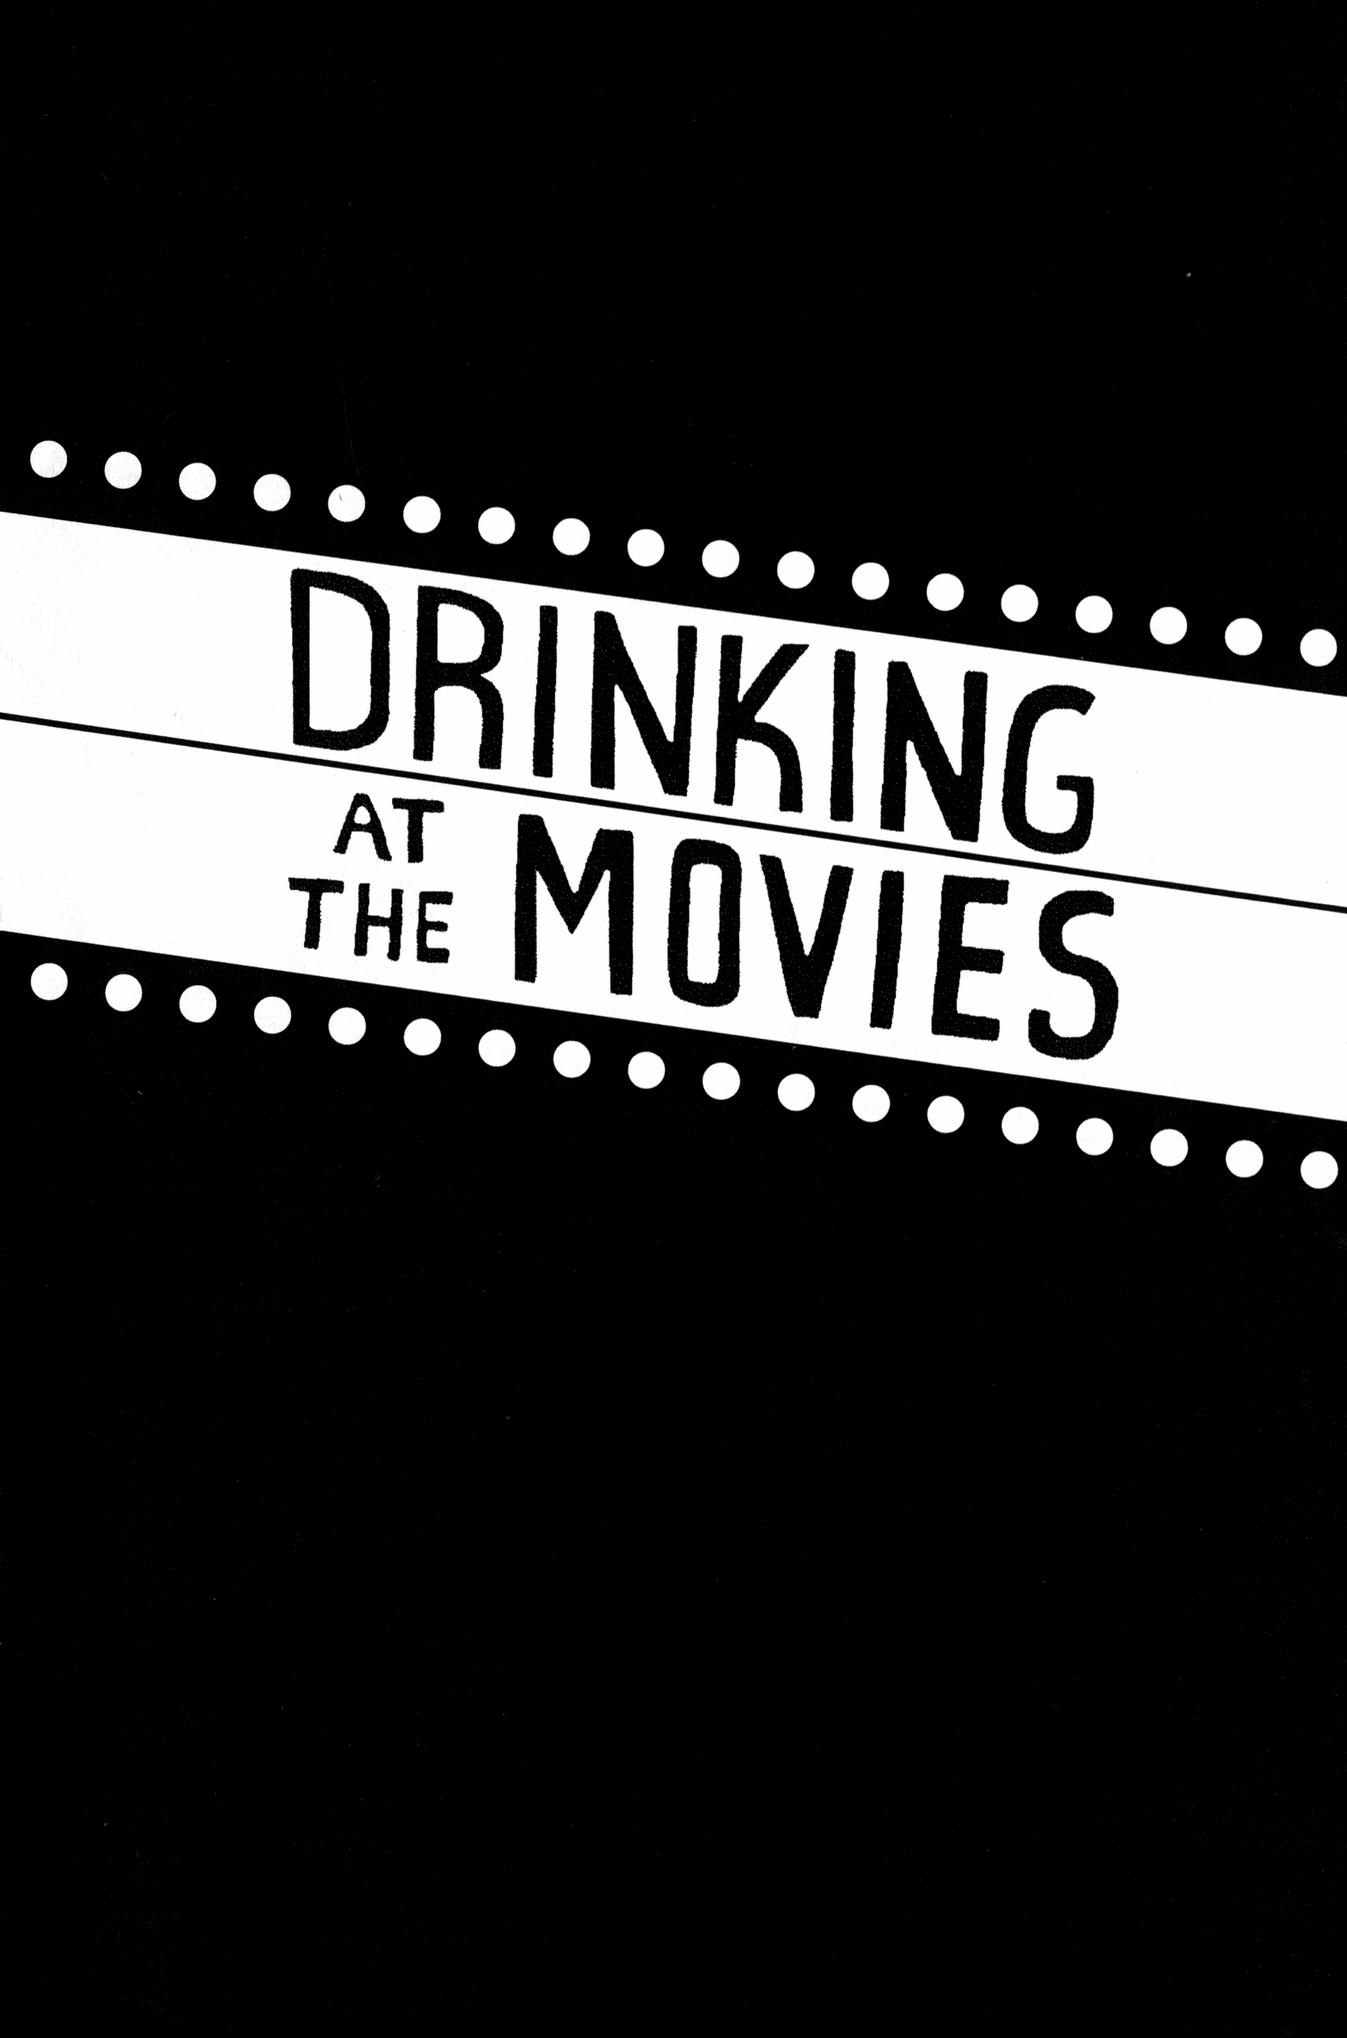 Read online Drinking at the Movies comic -  Issue # Full - 5